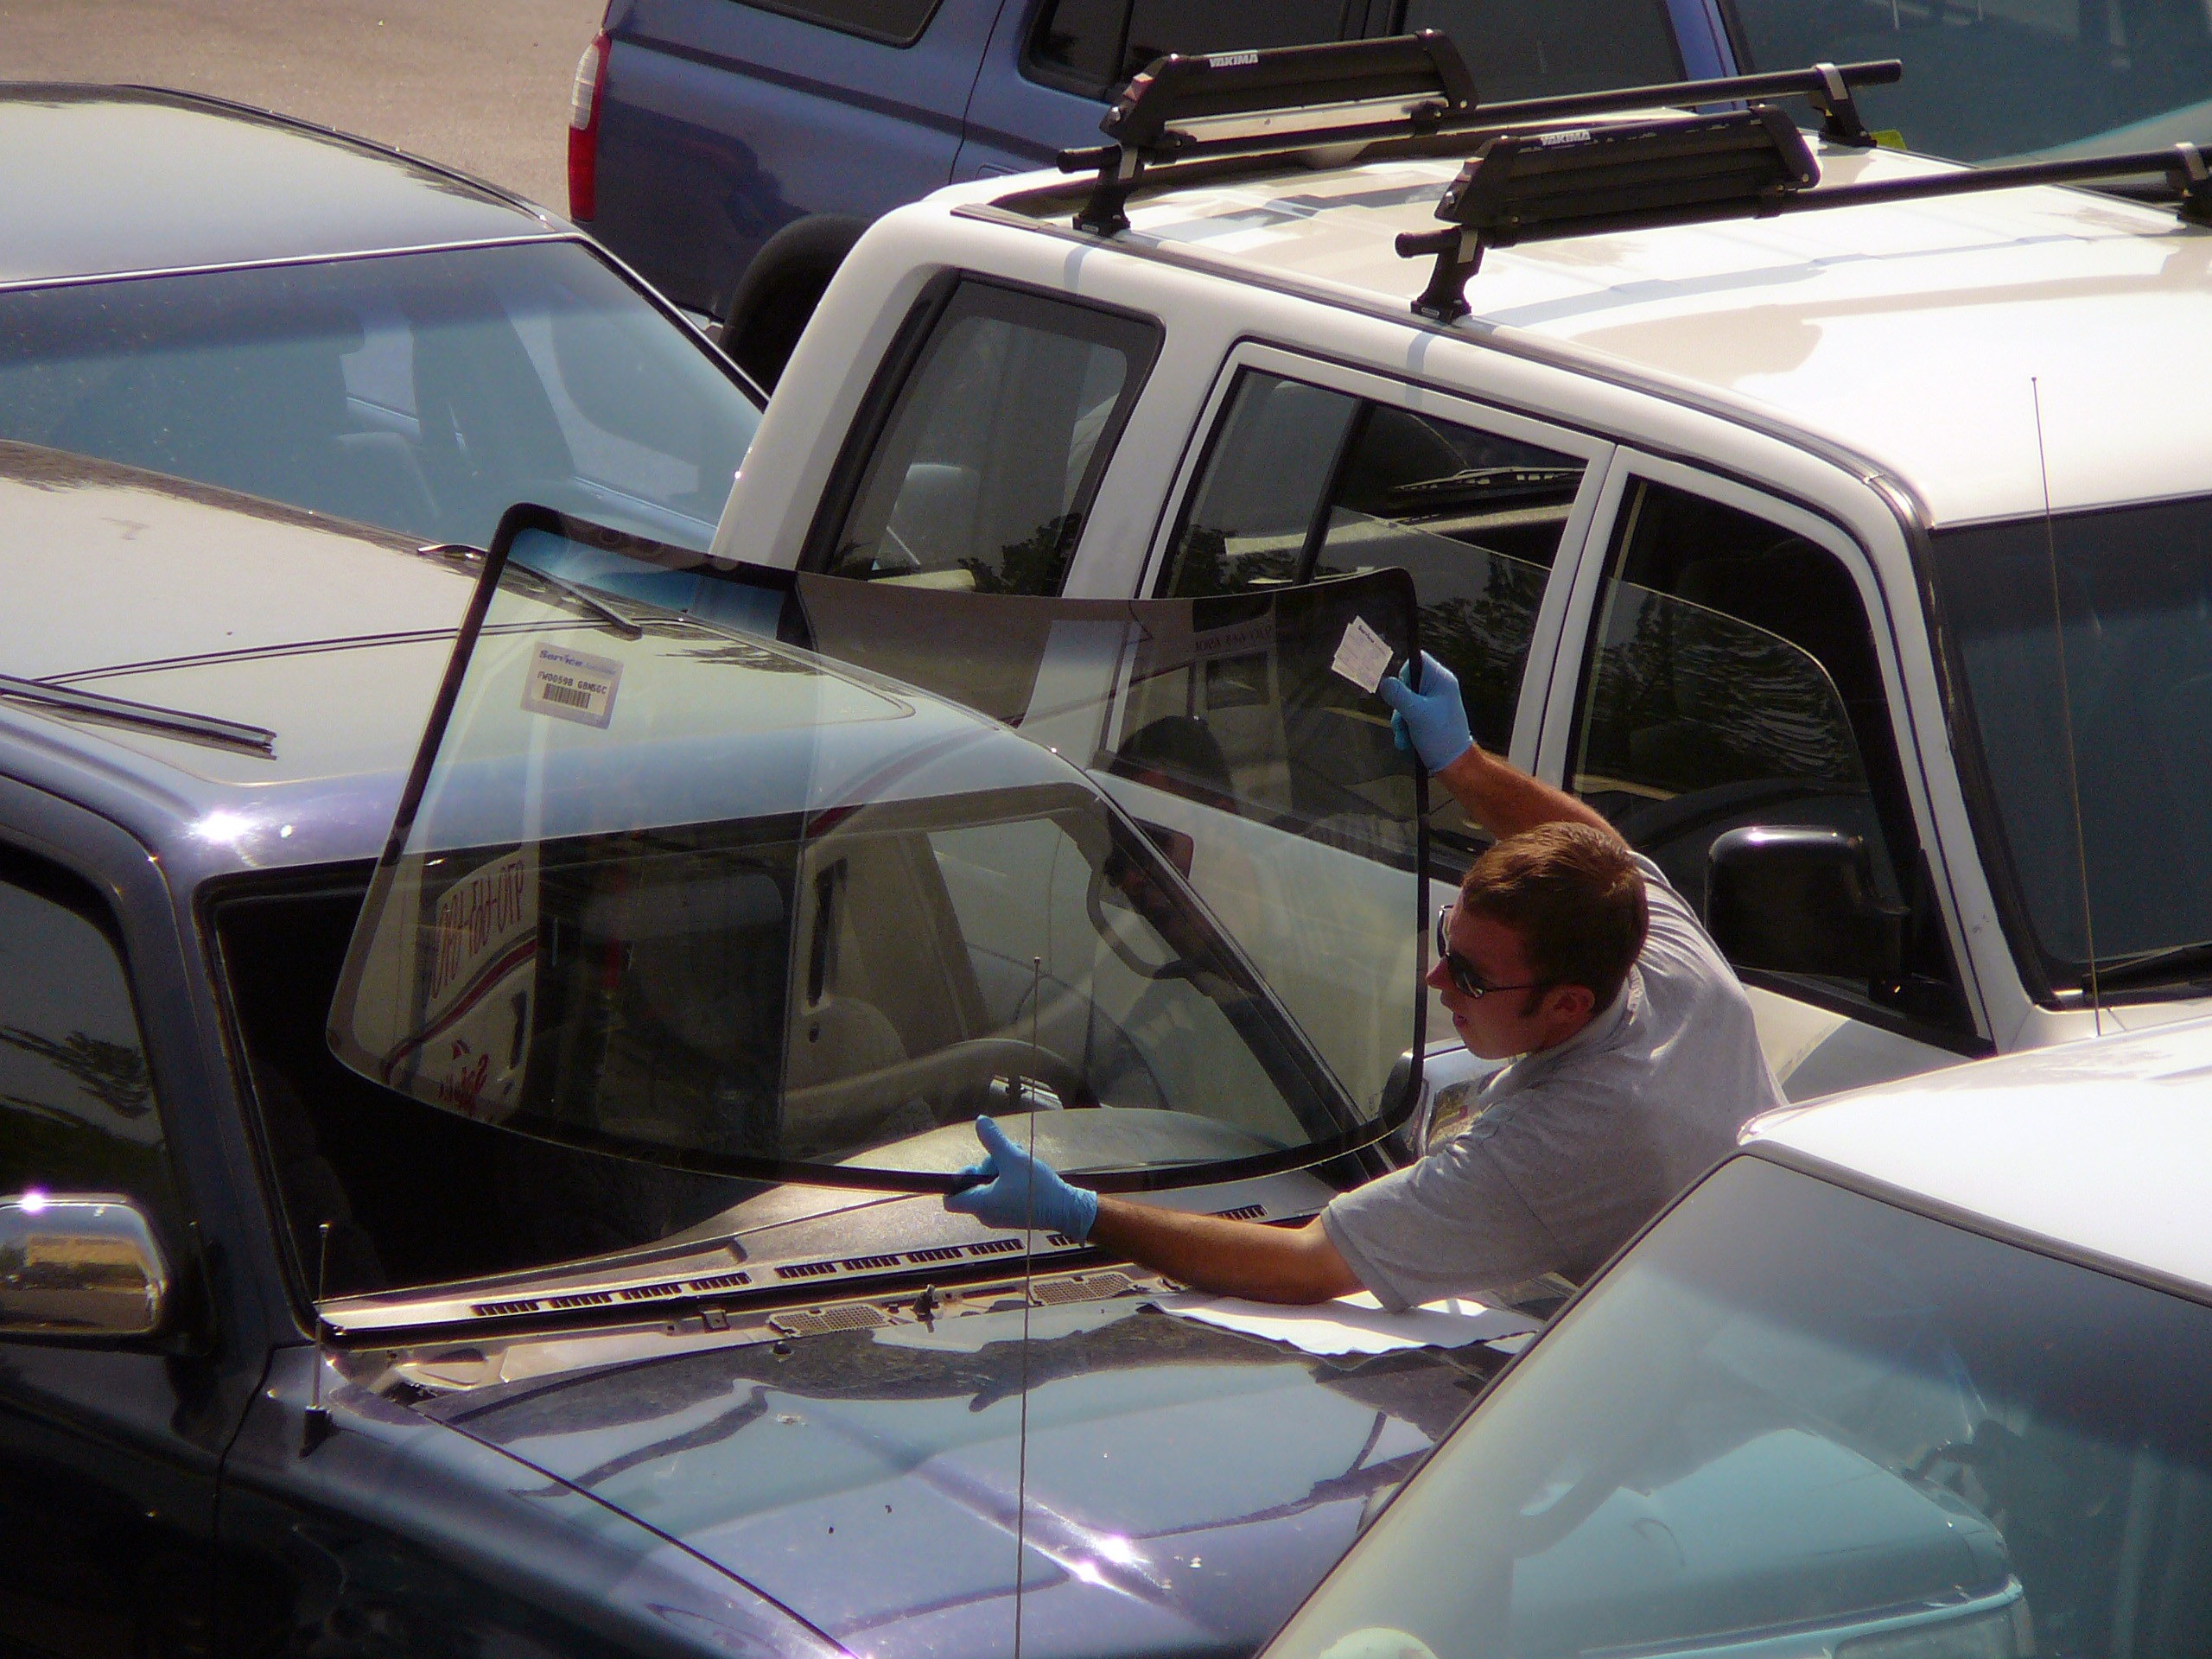 Windshield replacement in Nelspruit is affordable and can be done quickly at Eagle Glass.